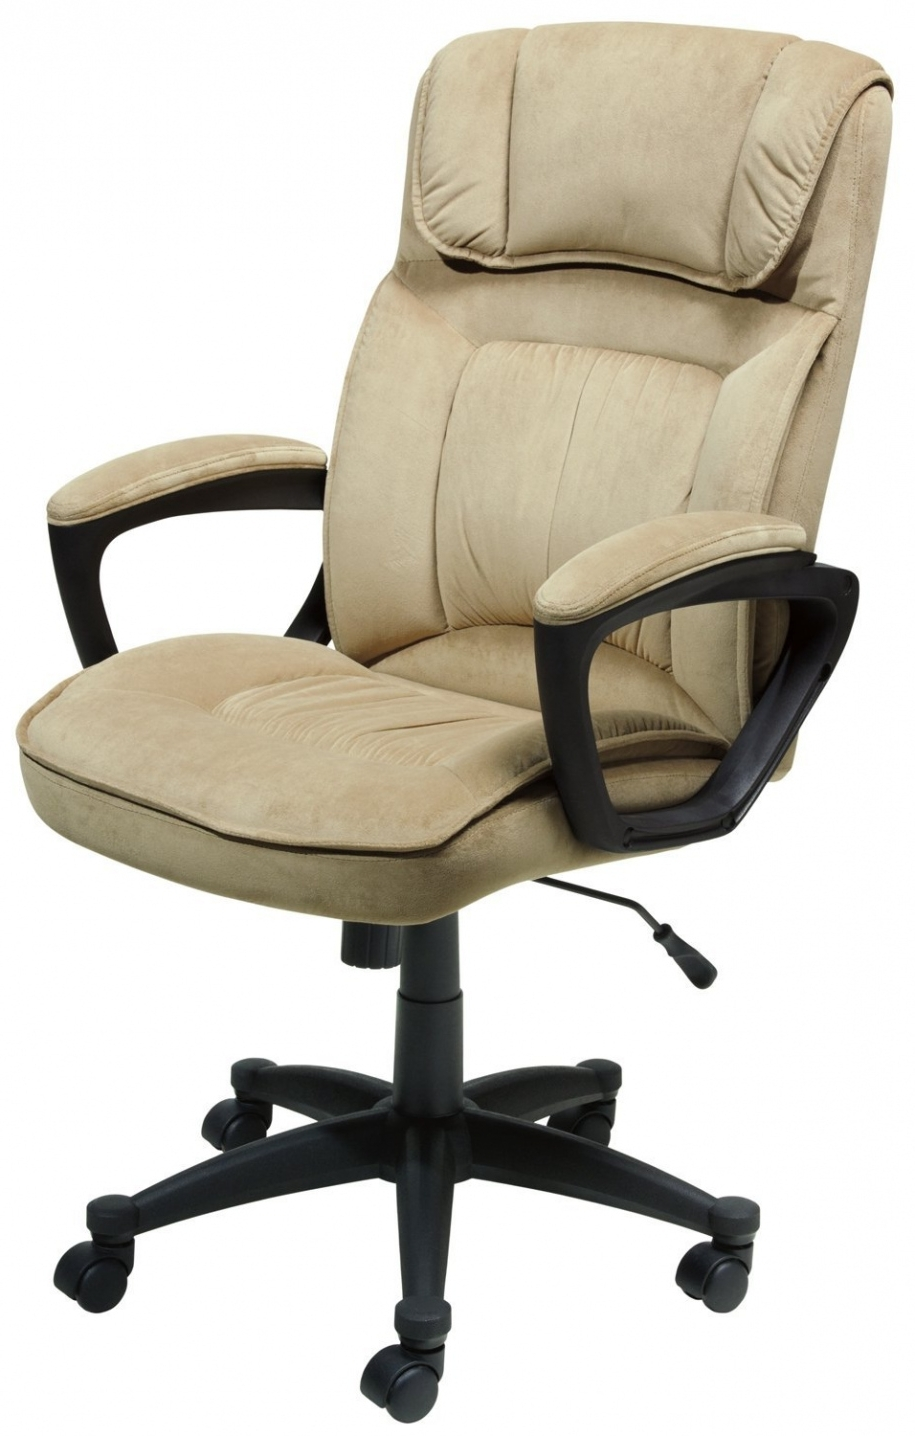 Heavy Duty Executive Office Chairs – Best Ergonomic Desk Chair With Widely Used Heavy Duty Executive Office Chairs (View 7 of 20)